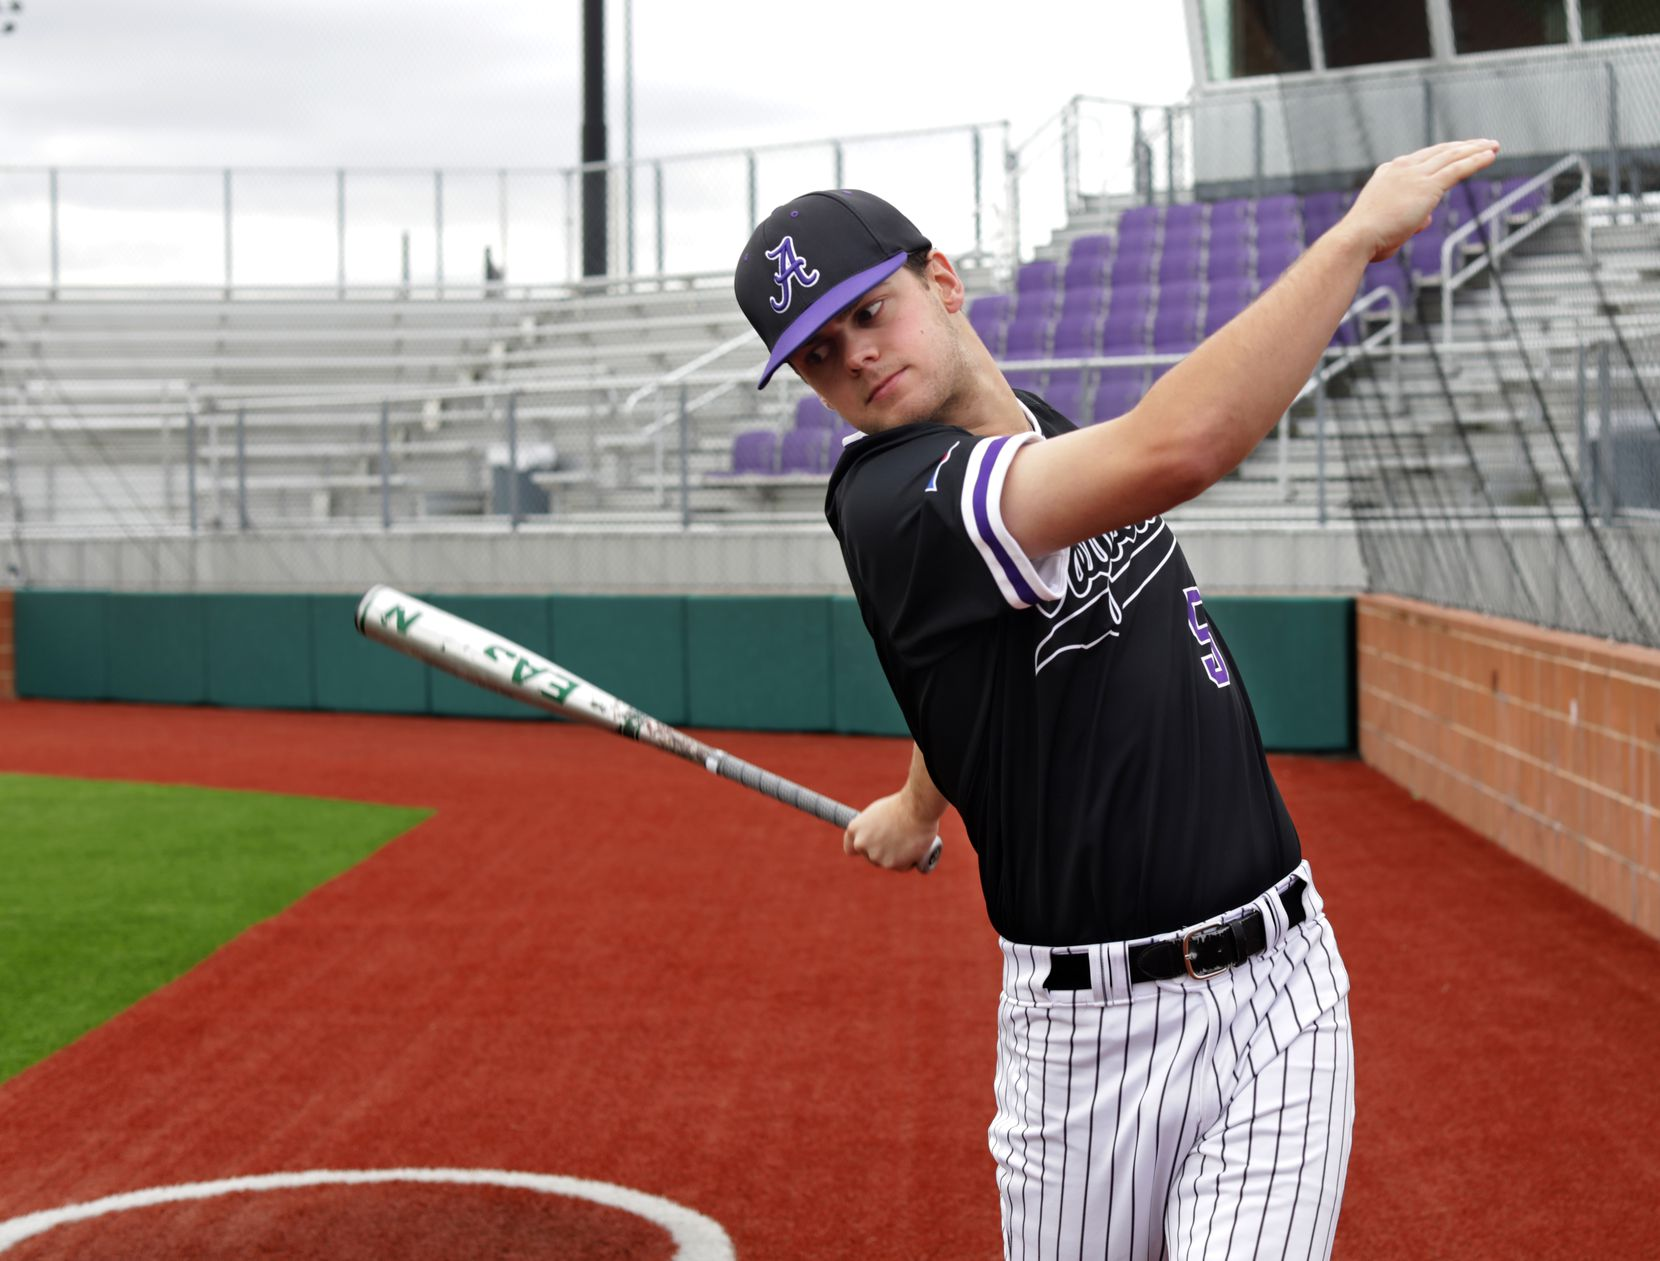 Rawley Hector warms up to bat at Anna High School in Anna, TX, on May 4, 2021. (Jason Janik/Special Contributor)